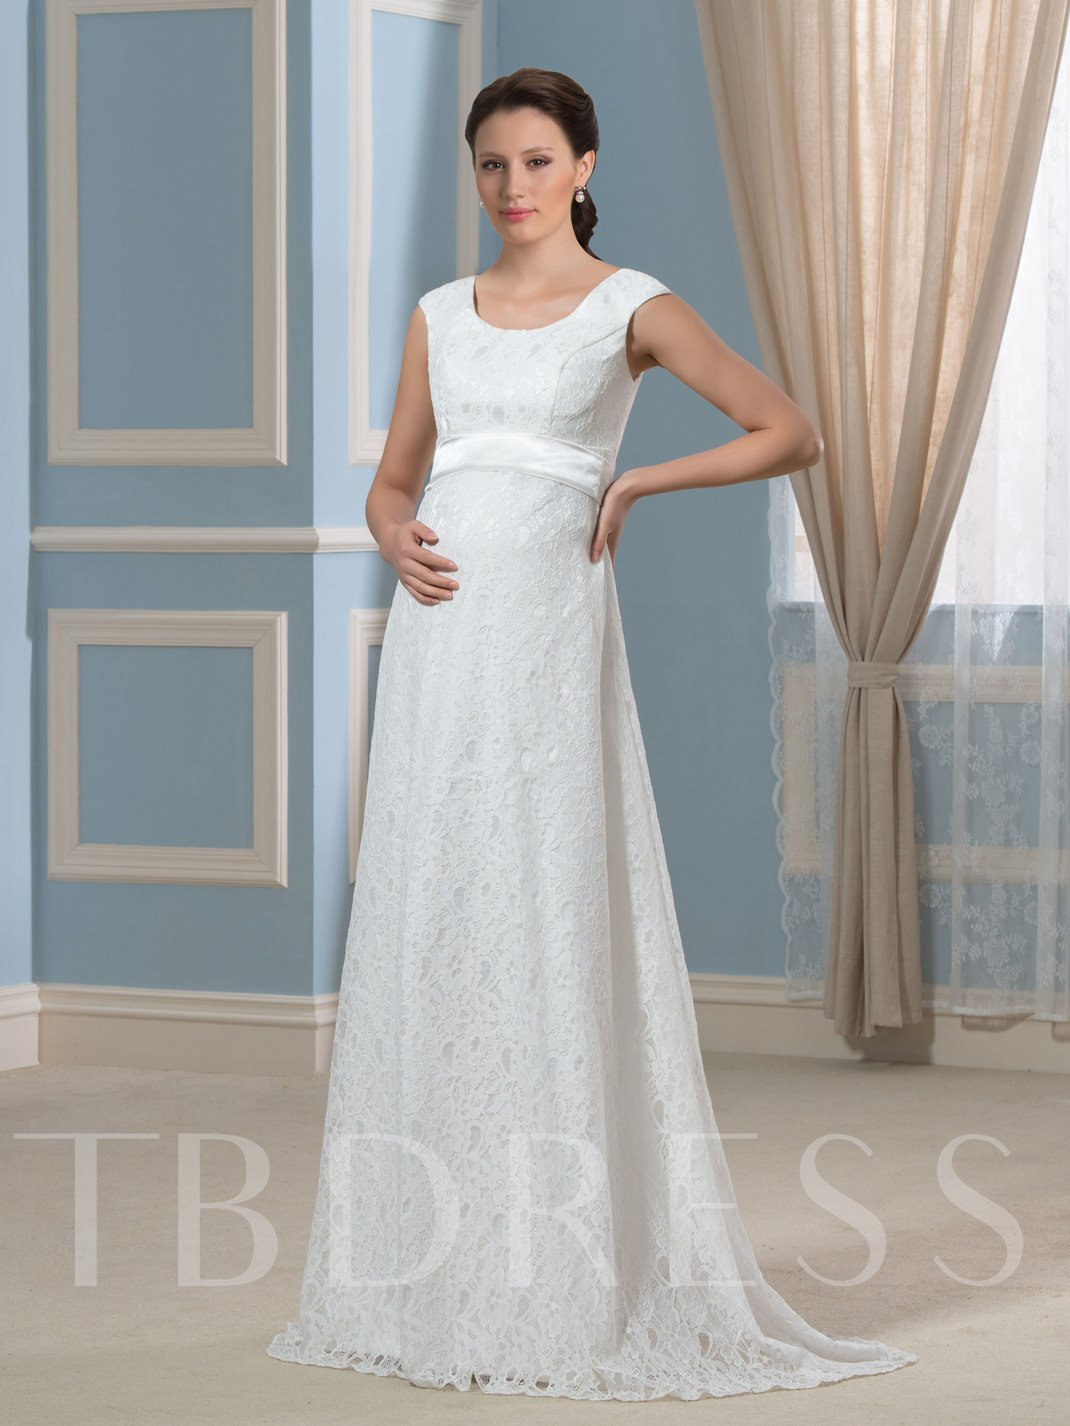 Pregnancy A Line Lace Empire Waist Maternity Wedding Dress